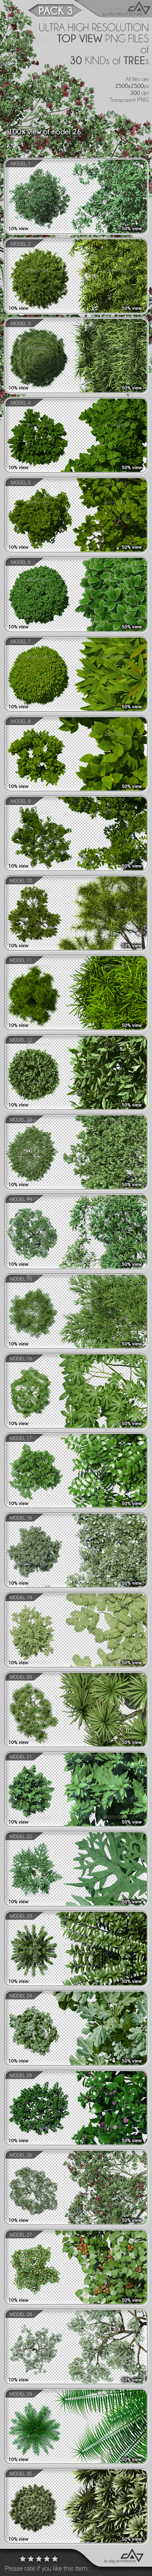 Top View Trees Pack 3 - Objects Illustrations